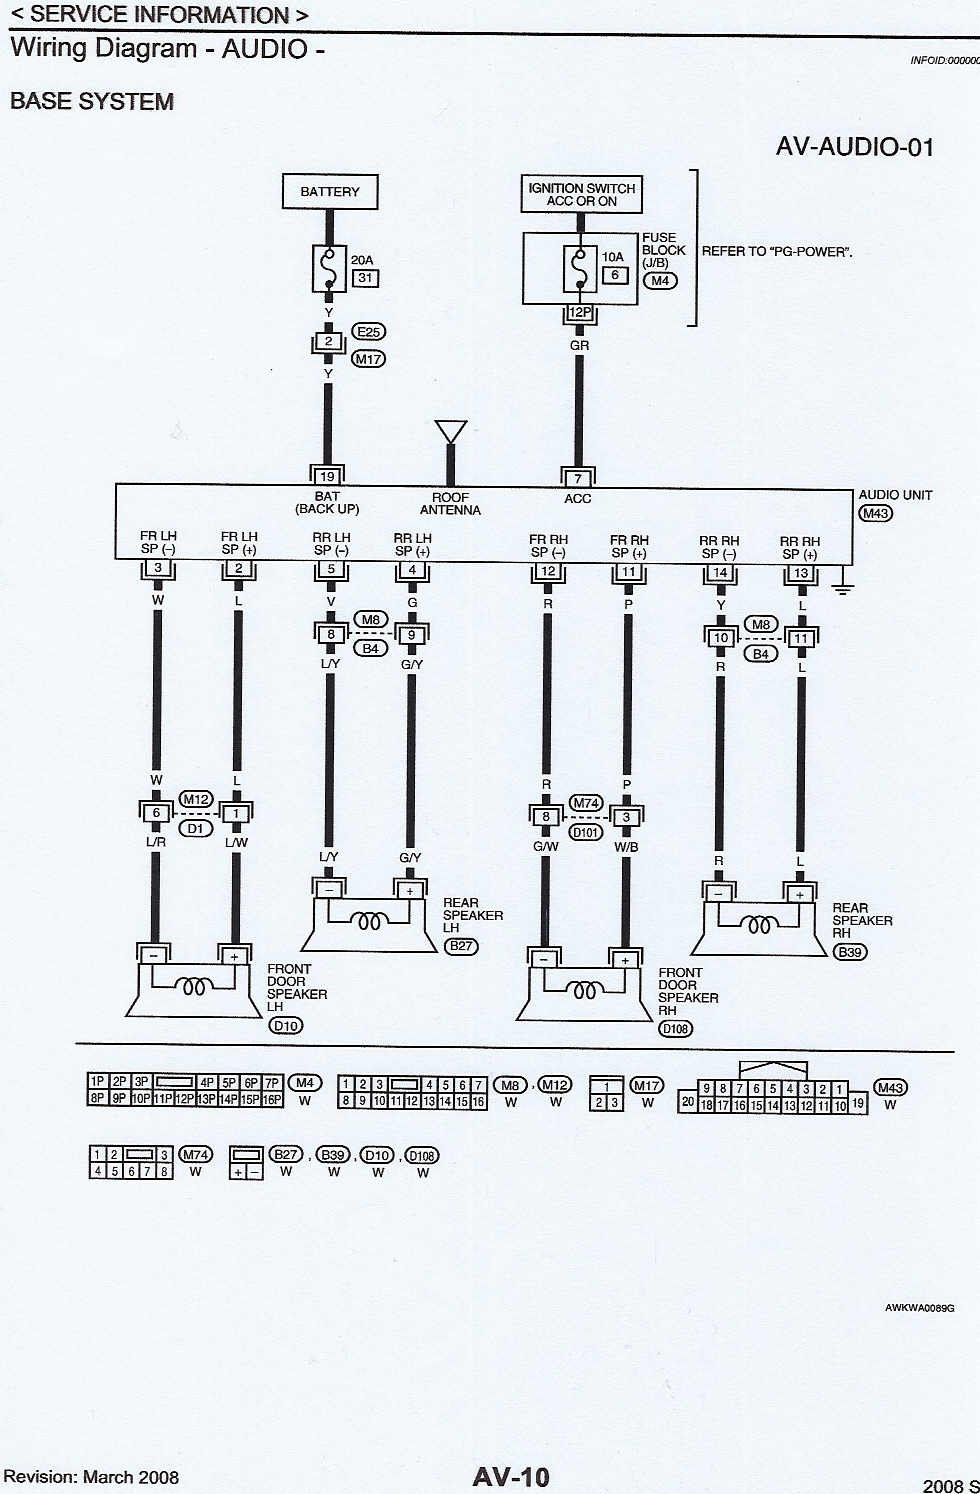 Boss bv9976 wire wiring diagram yamaha xvs1100 wiring diagram iphone boss radio wiring diagram for bv9600 jeep grand cherokee wiring 2008 08 19 003837 wires boss asfbconference2016 Images